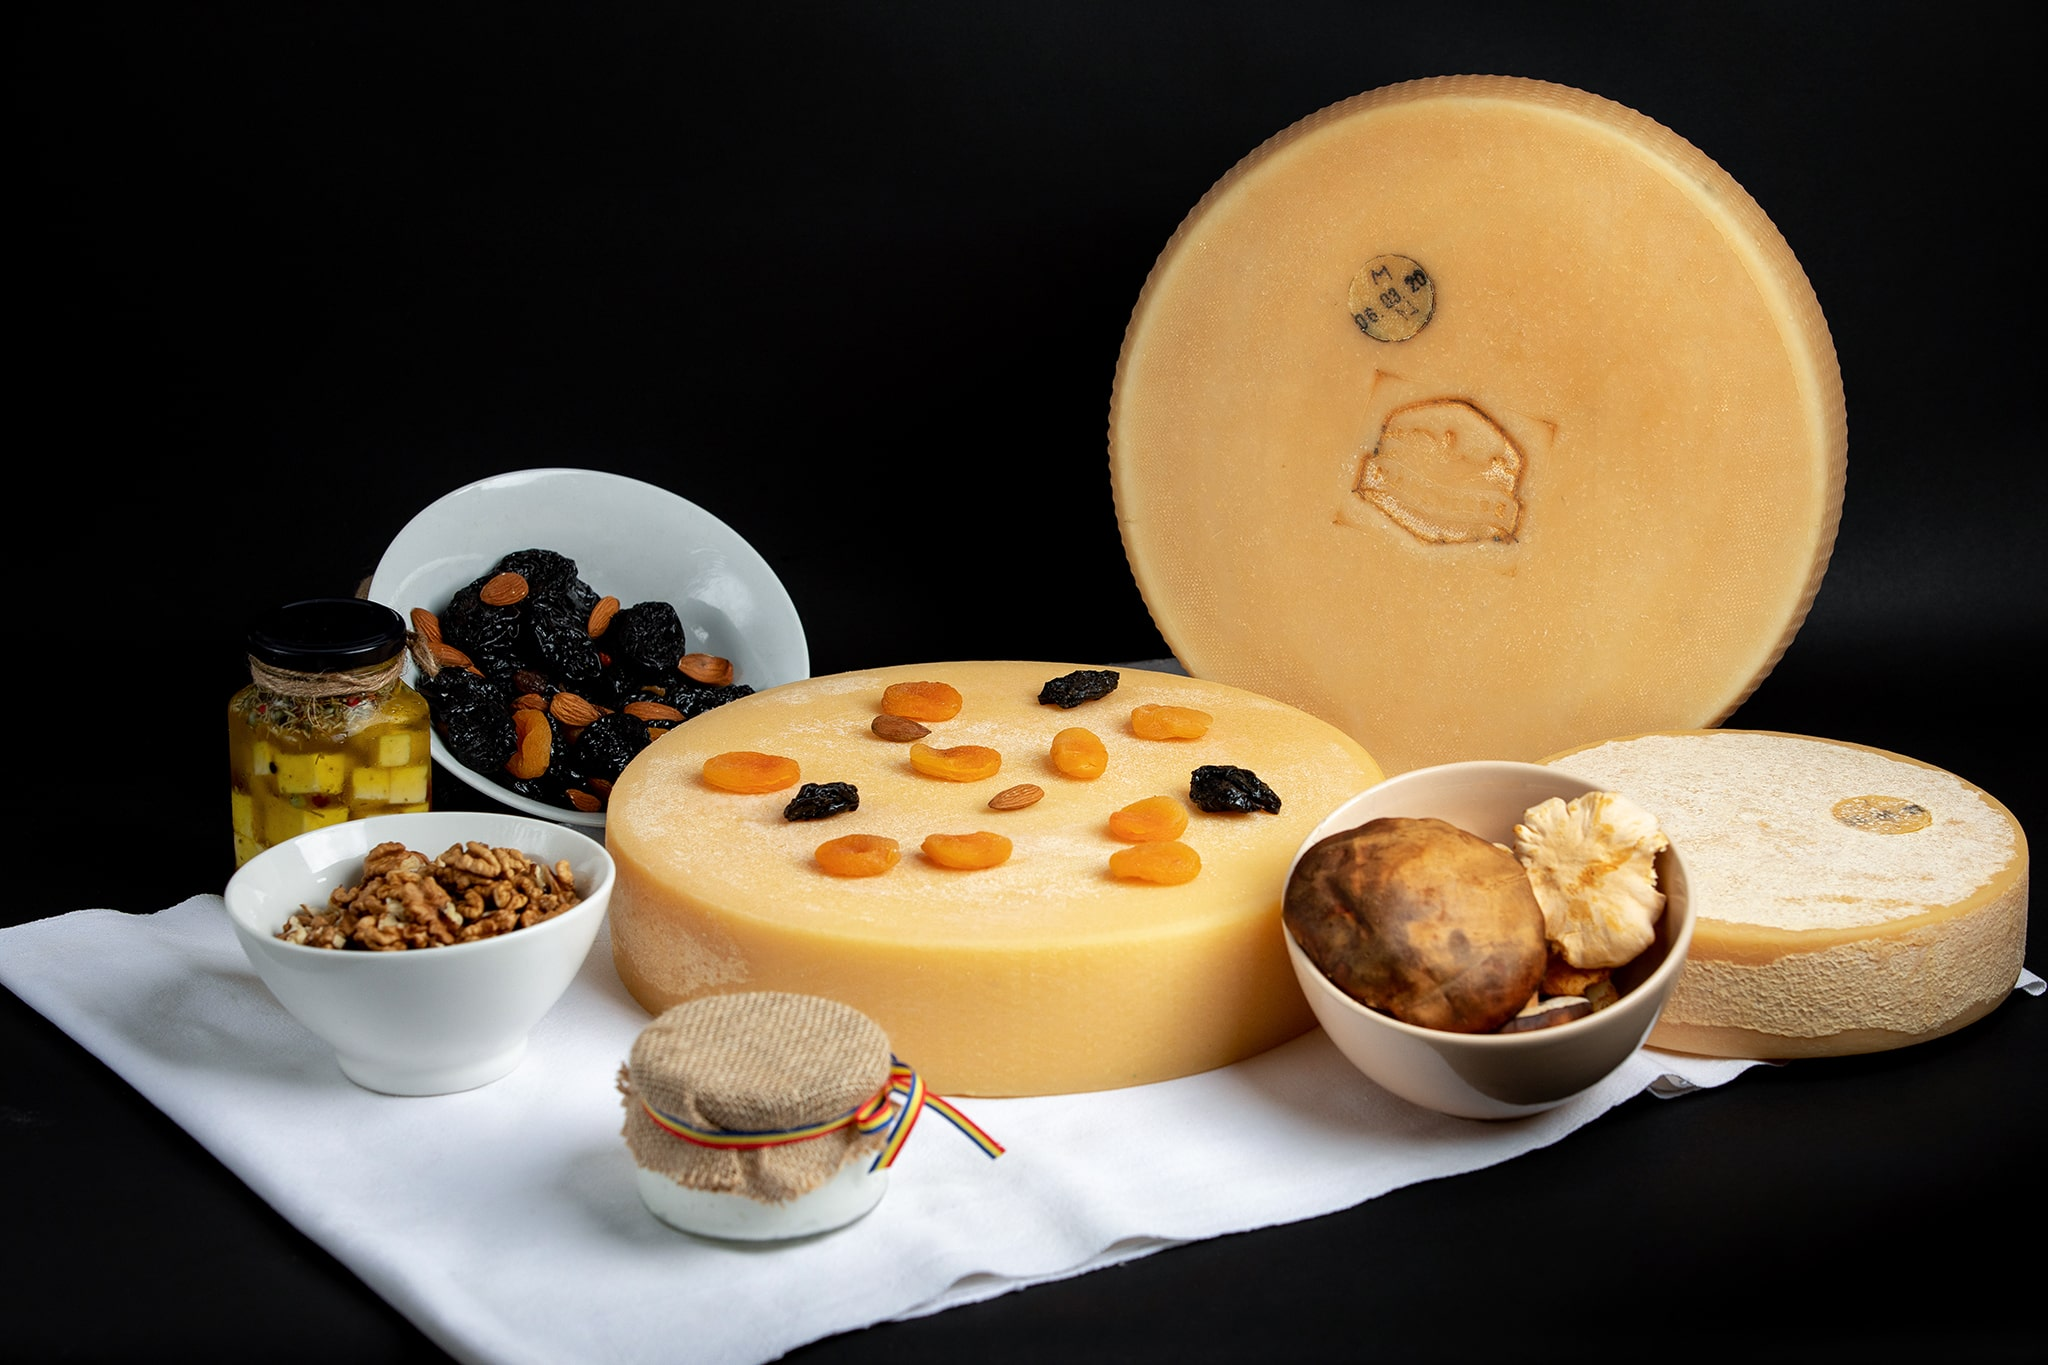 Raclette - NarCheese